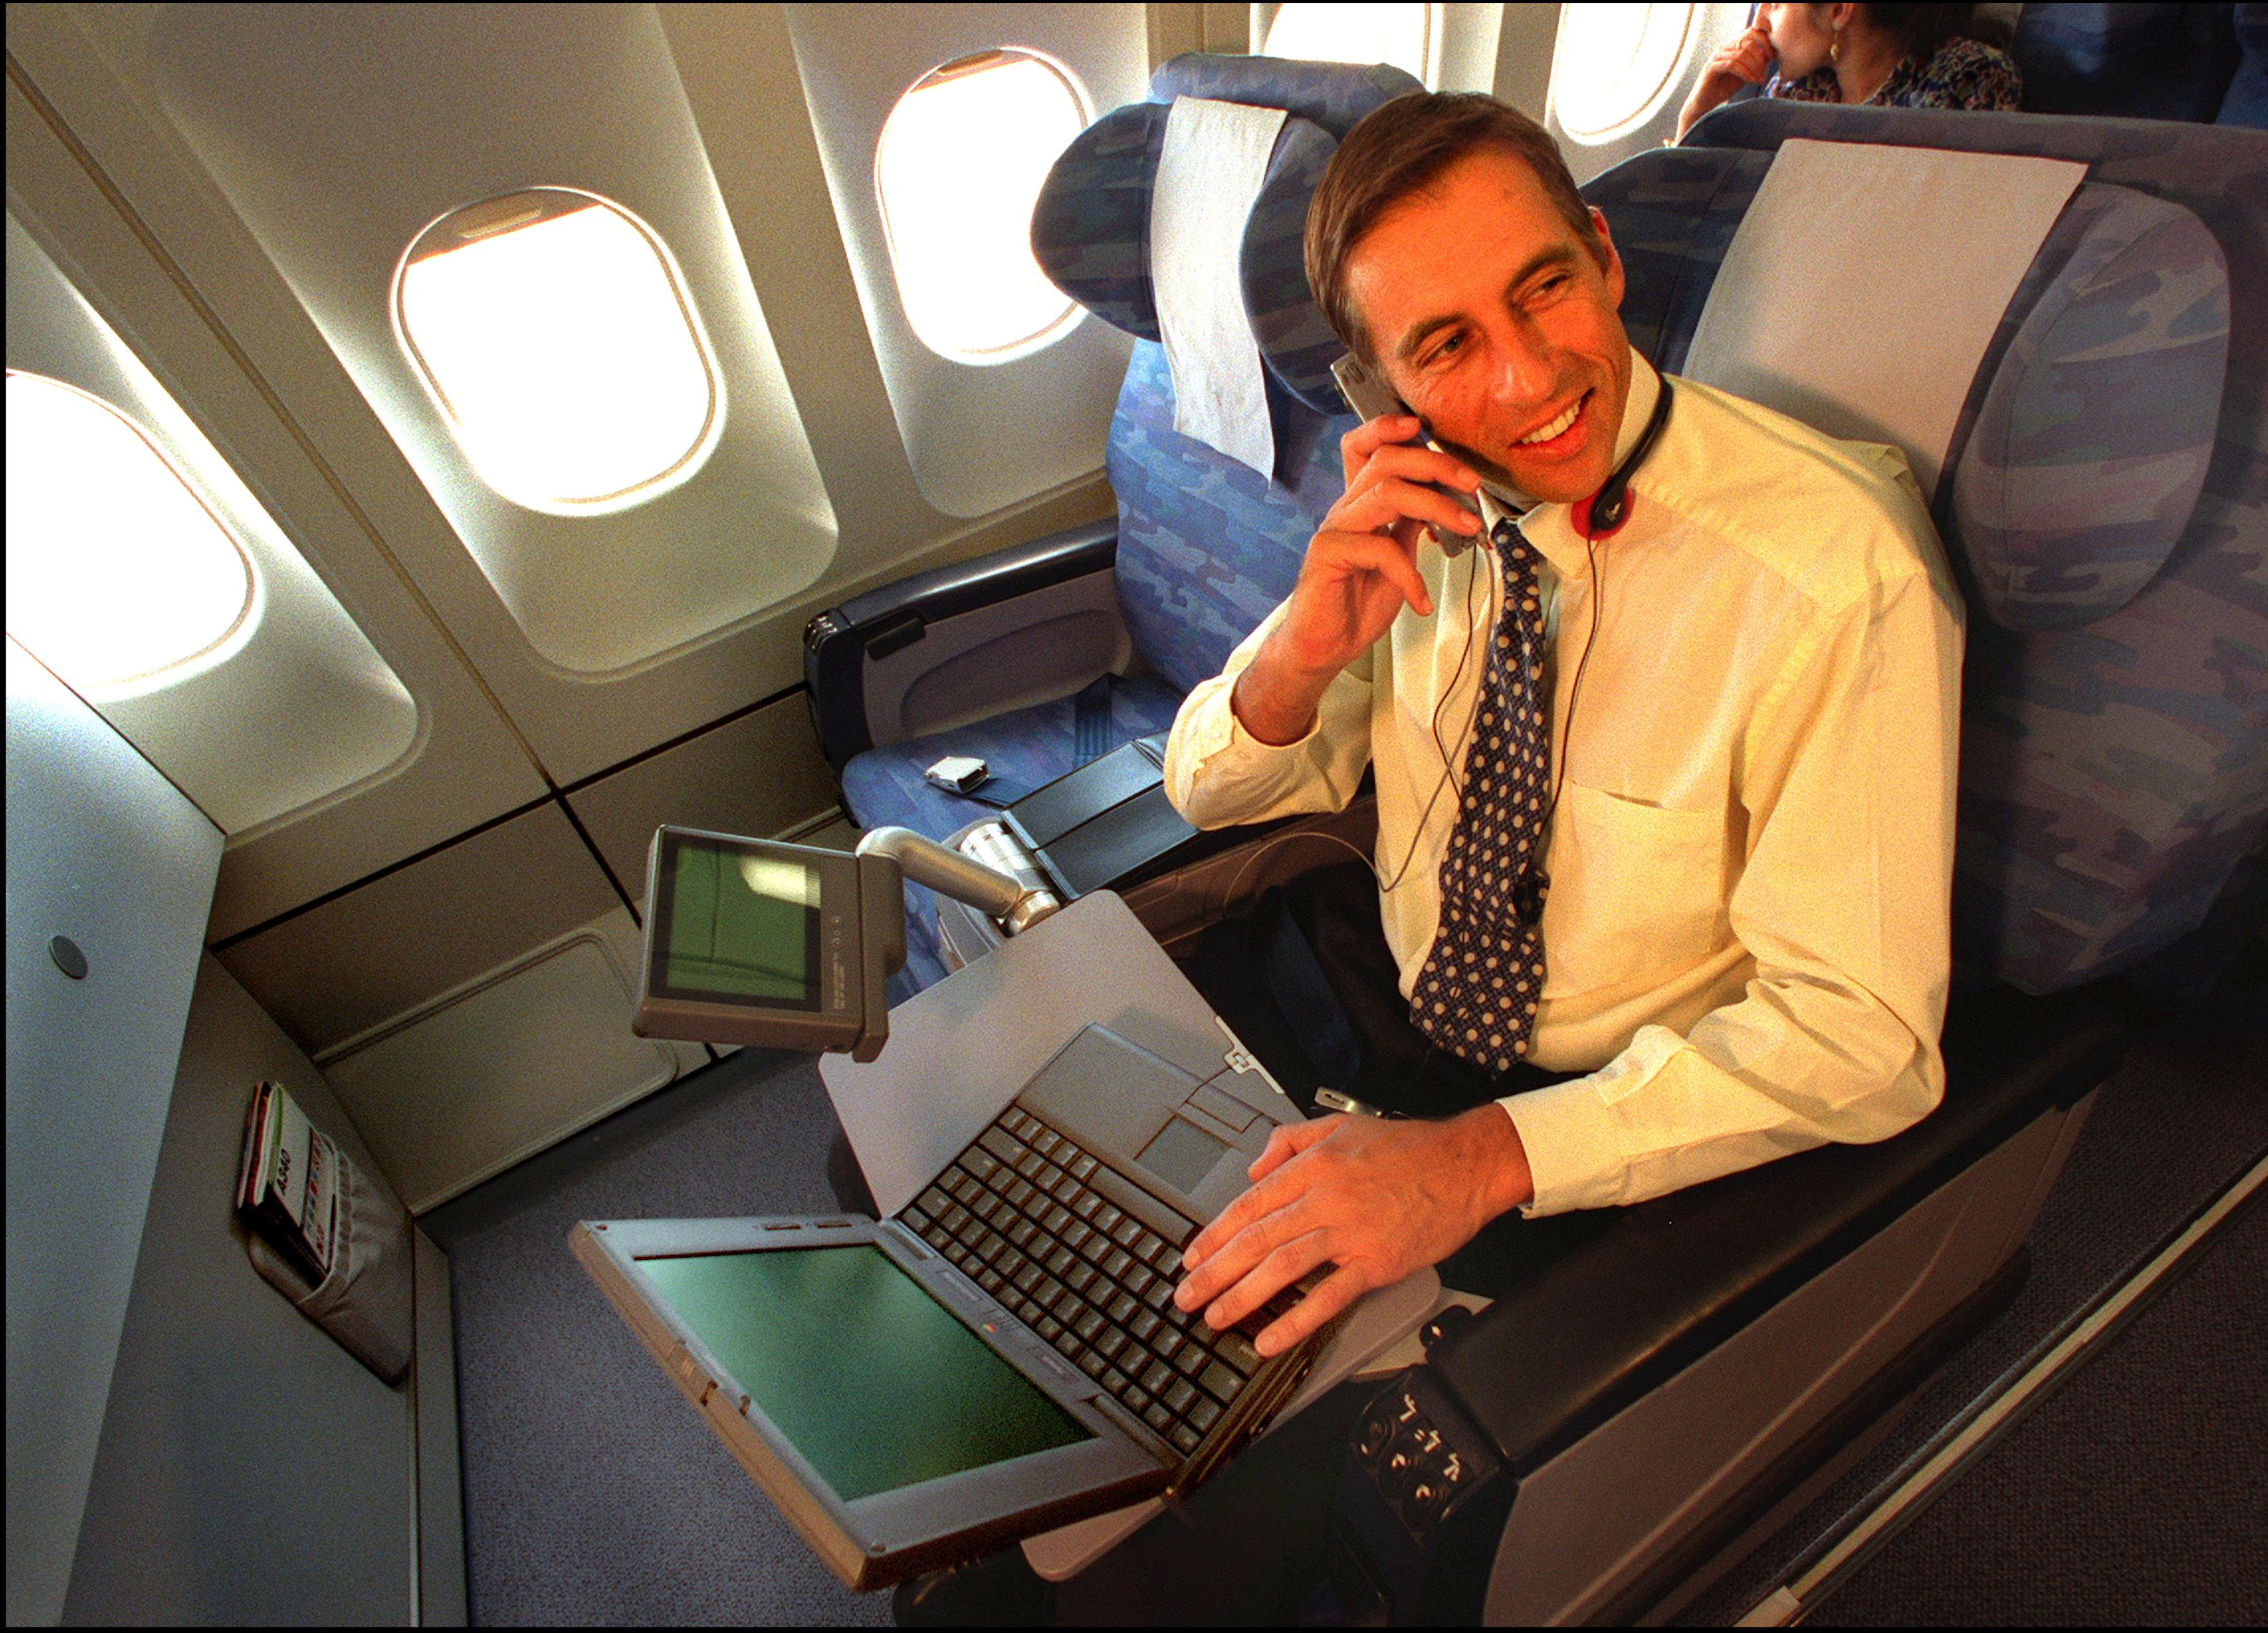 Airline passenger talks on block cell phones with bulky laptop